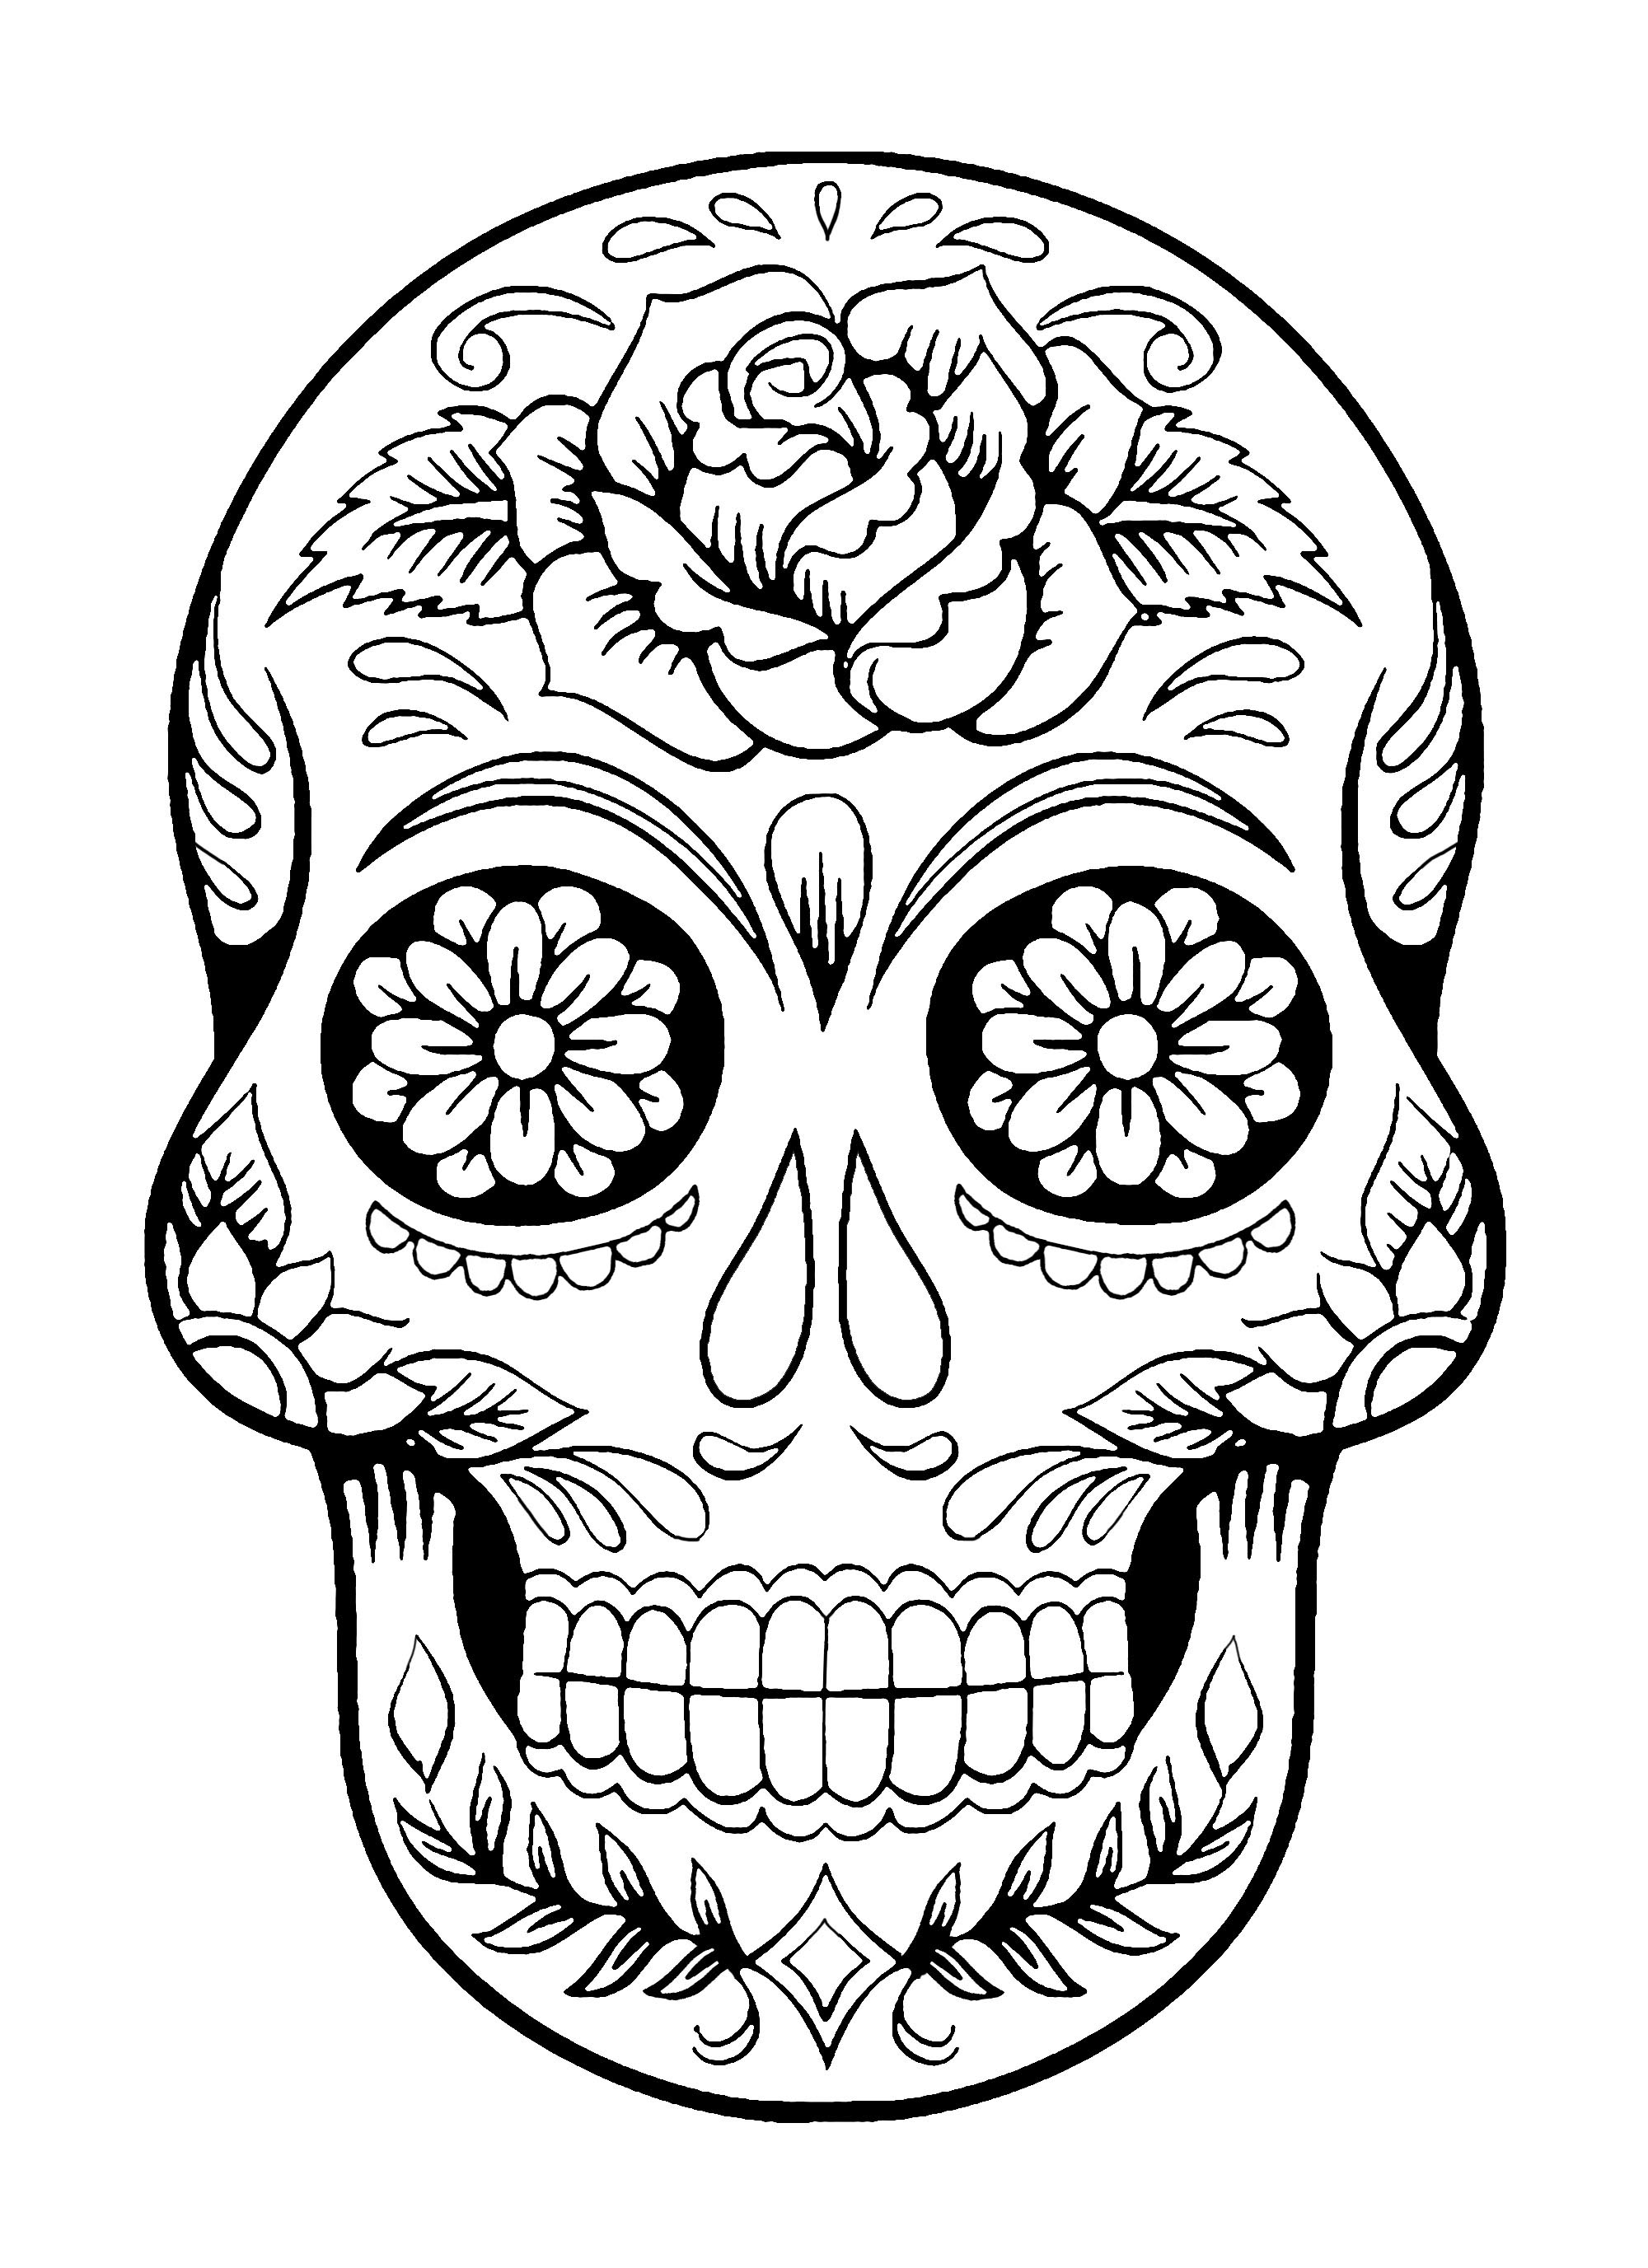 day of the dead skulls coloring pages day of the dead sugar skull coloring page free printable of pages day skulls the coloring dead